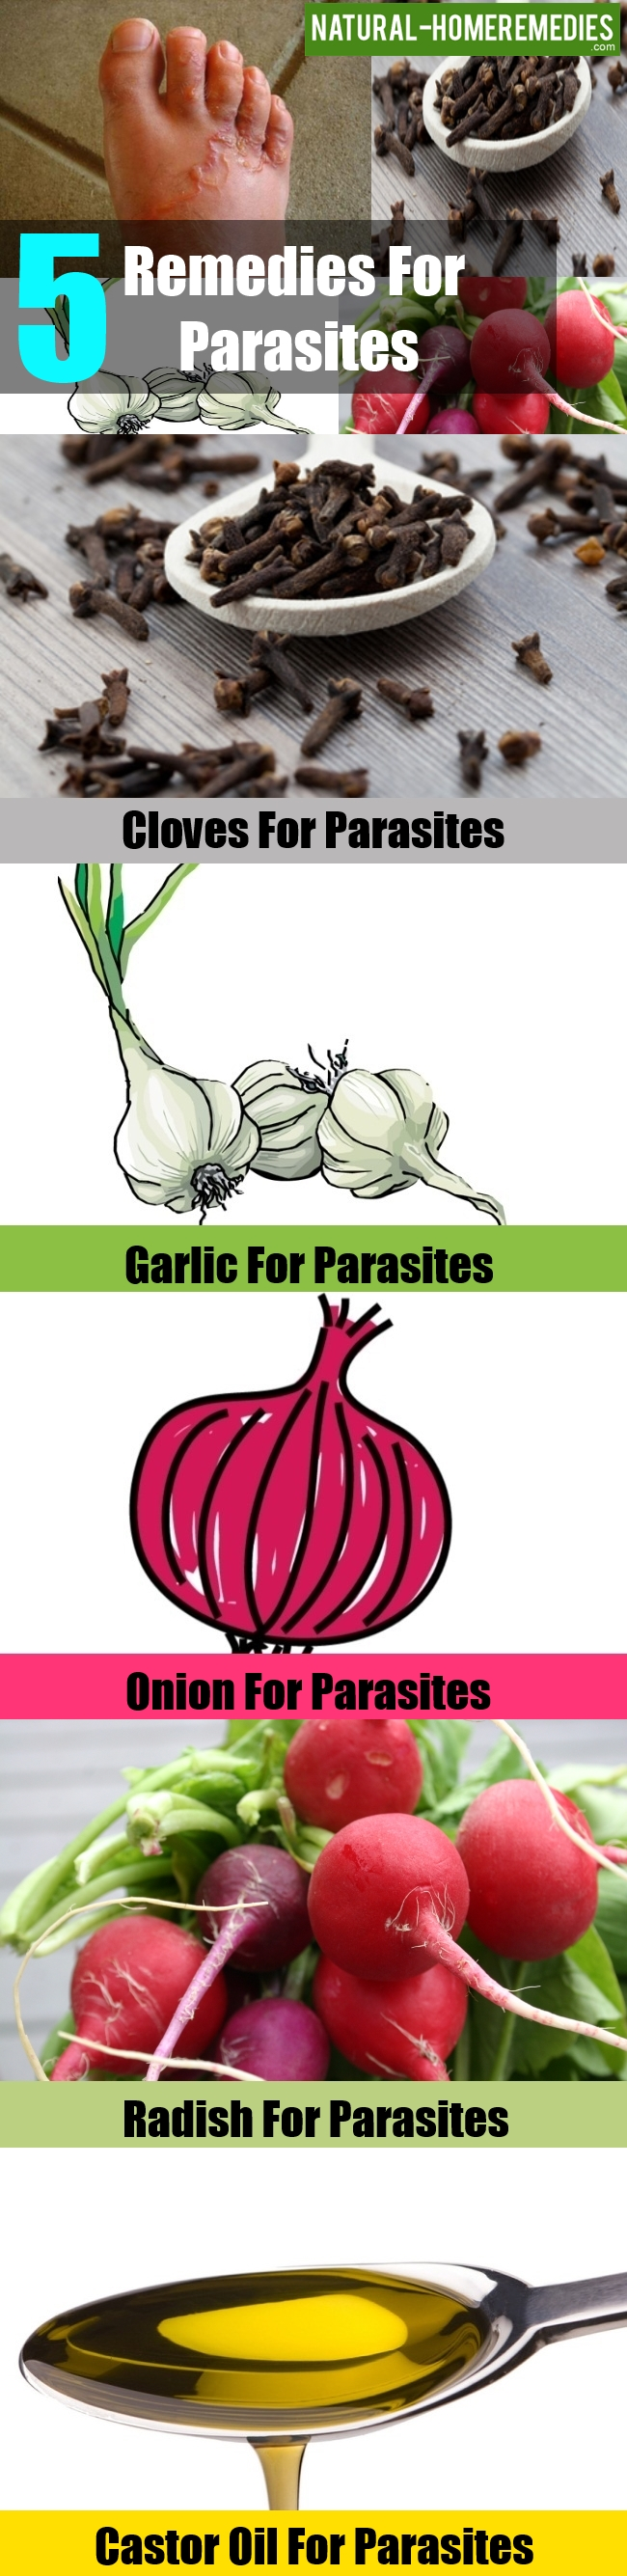 Remedies For Parasites